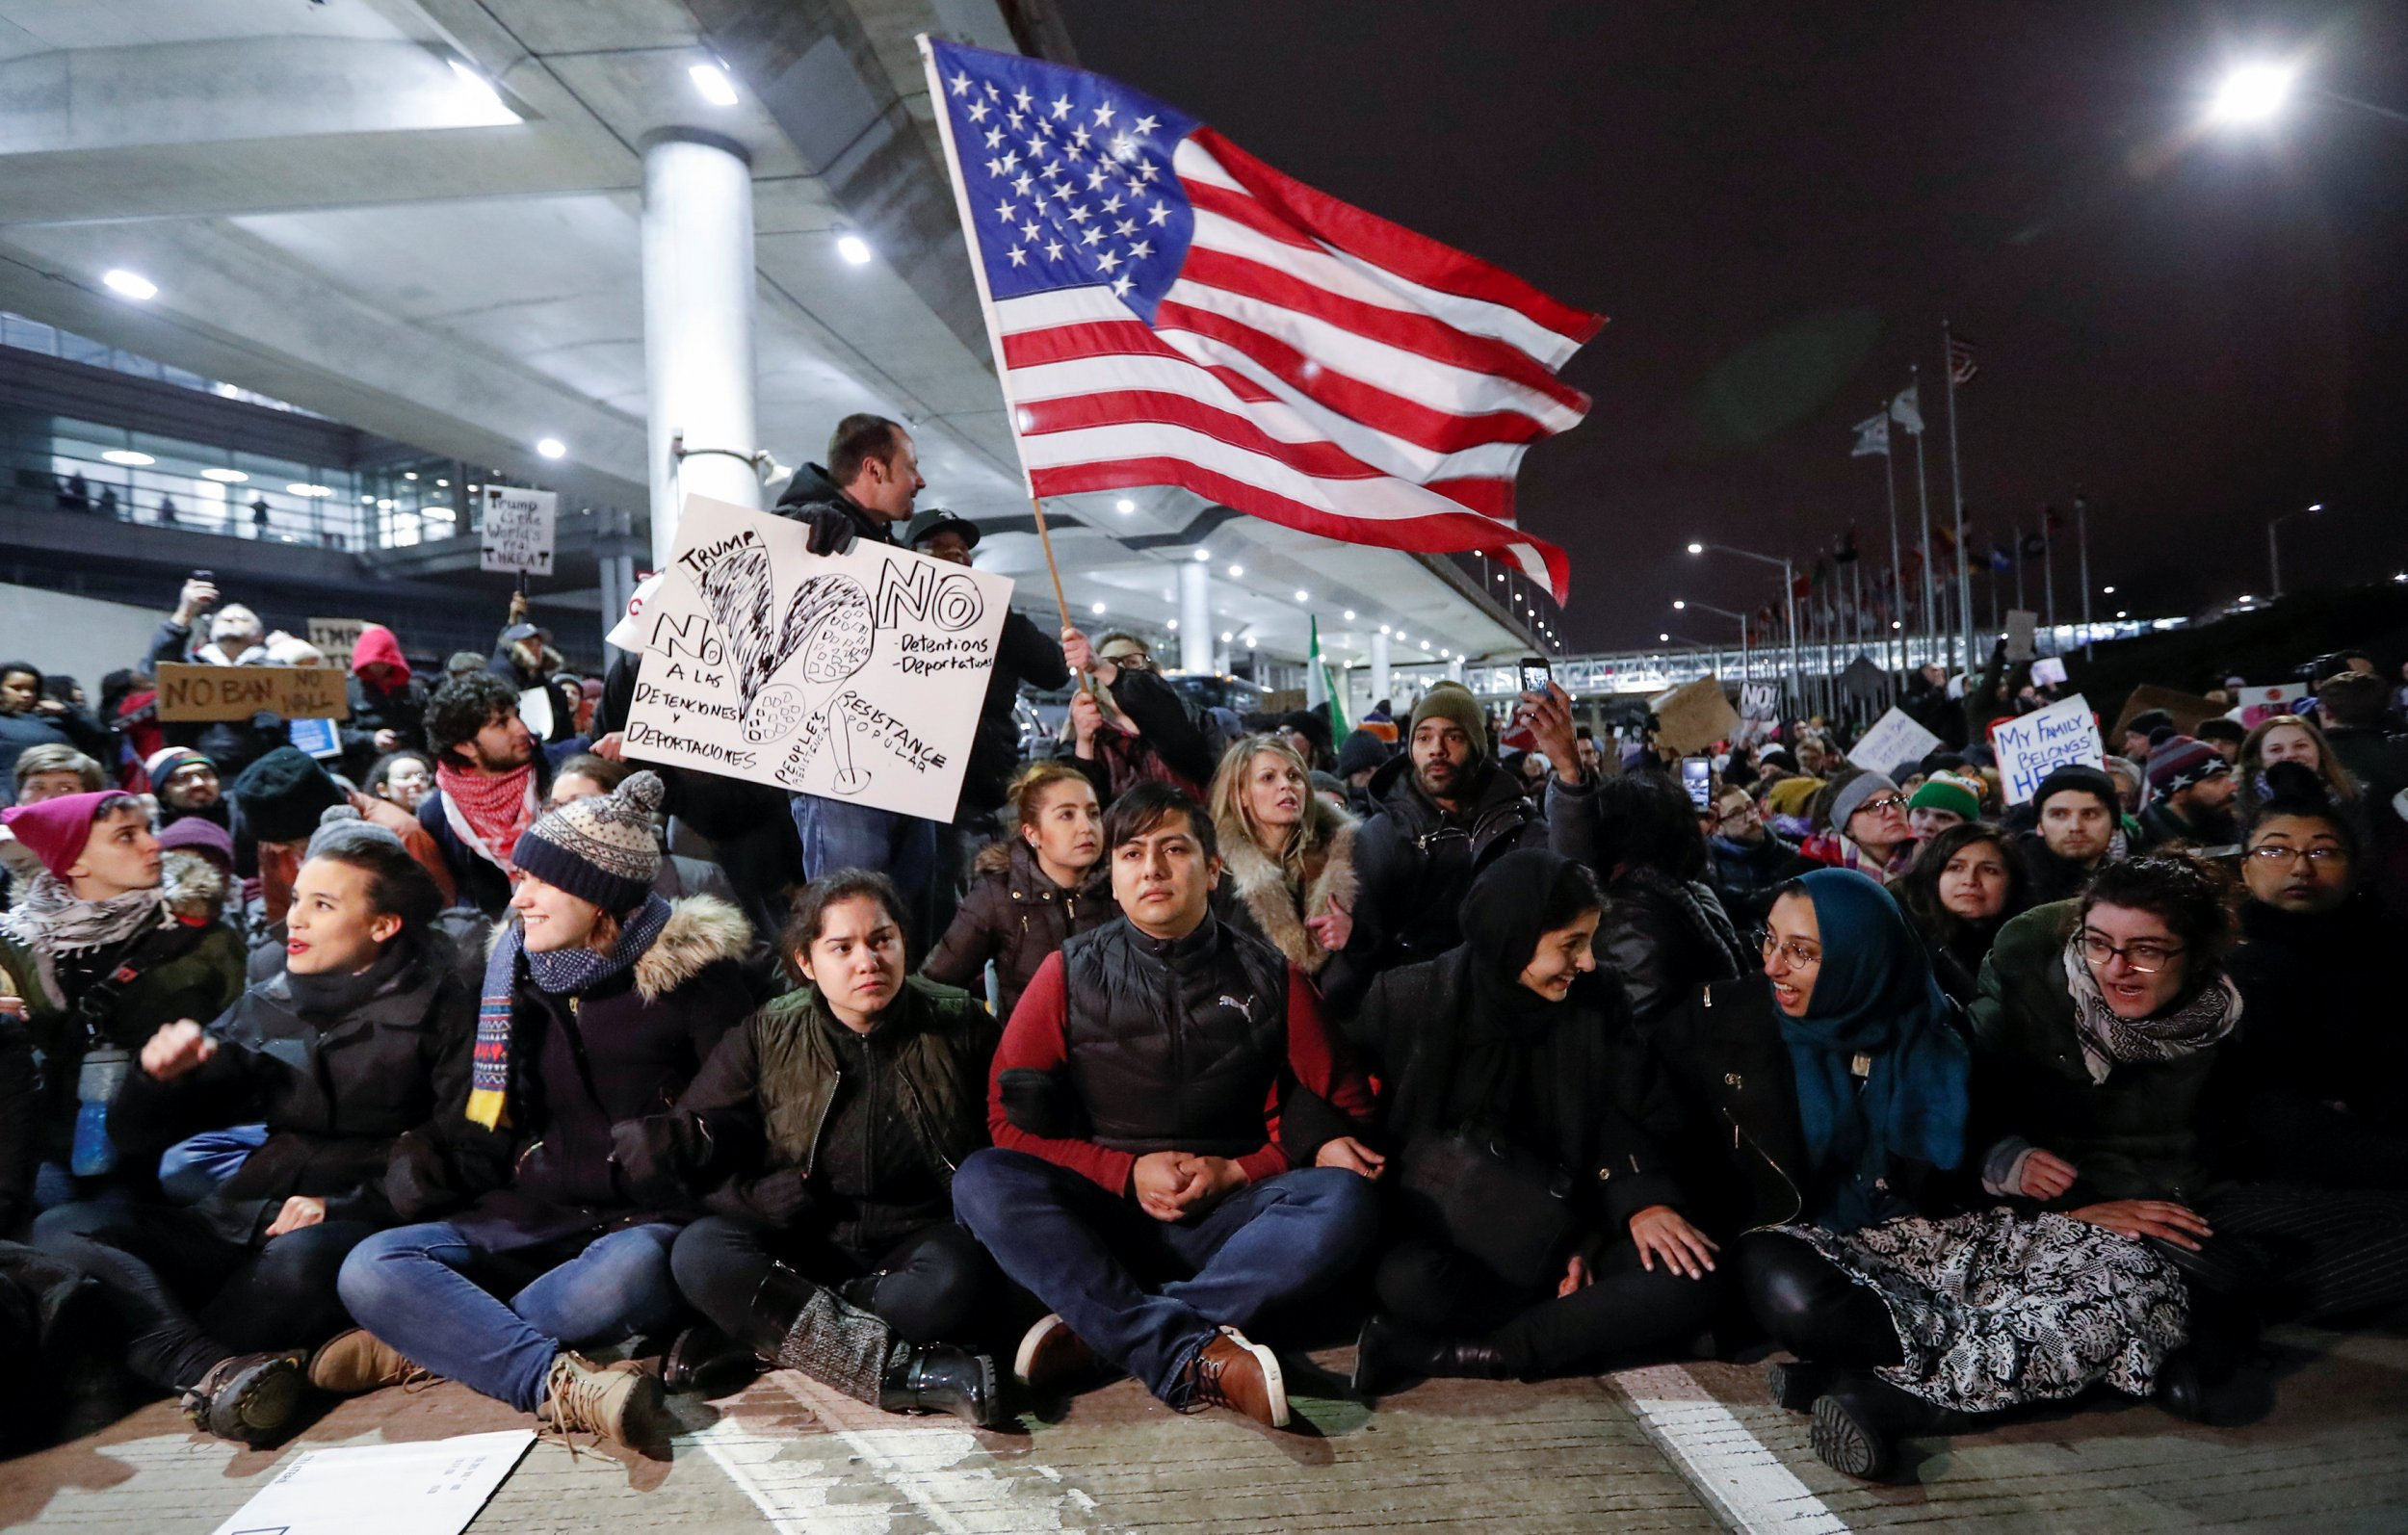 photos immigrant ban protests at american airports